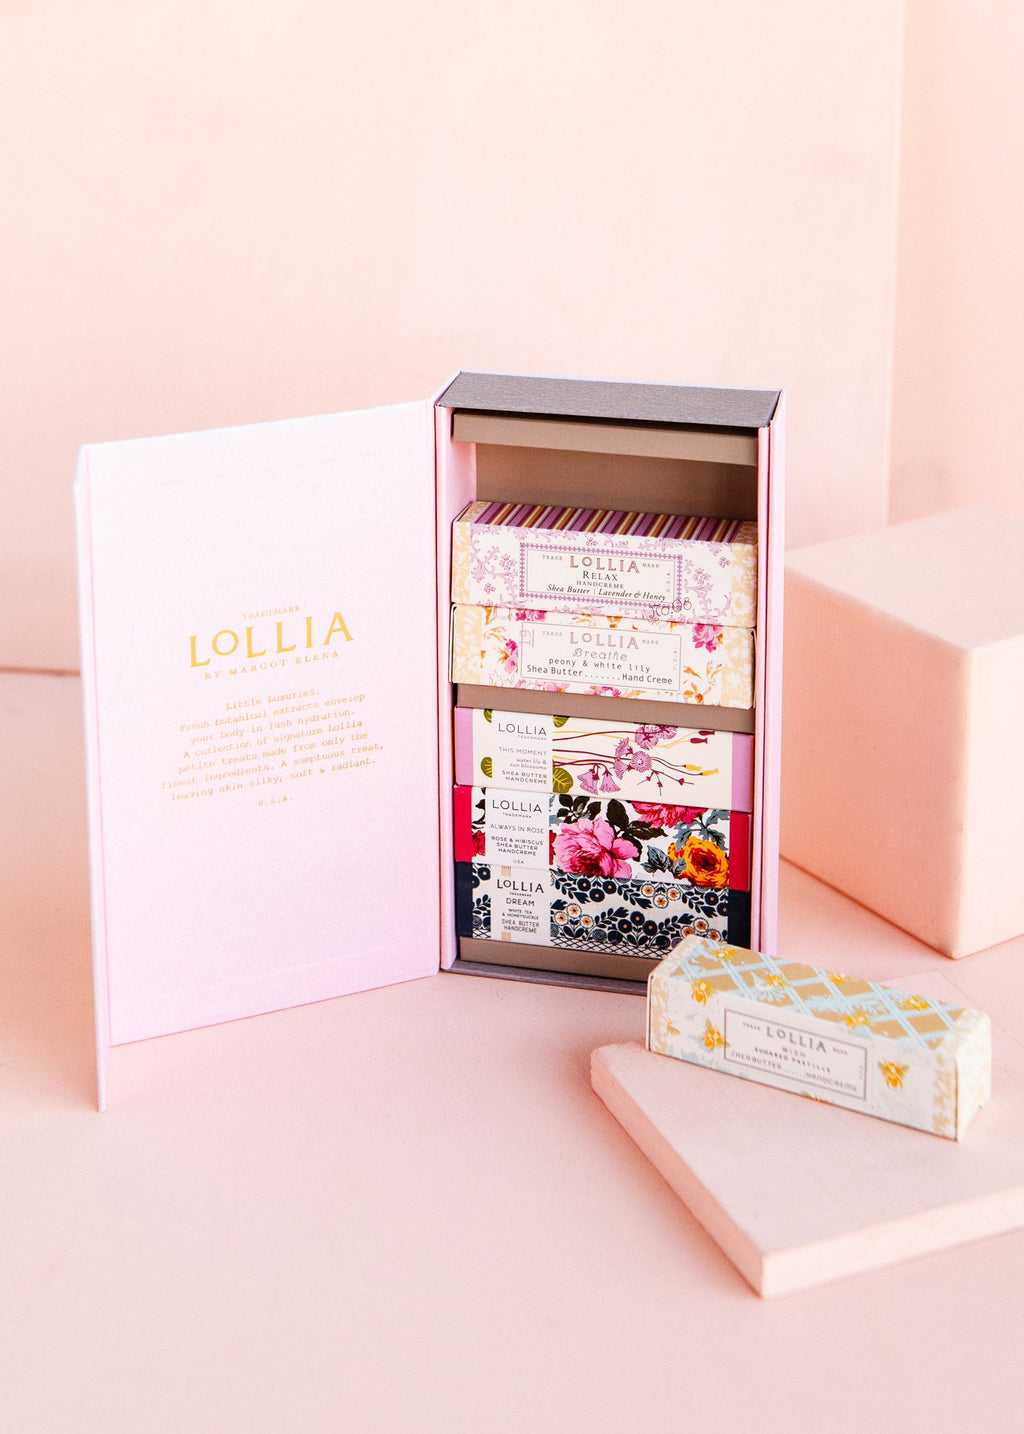 Lollia Petite Treat Handcreme Set